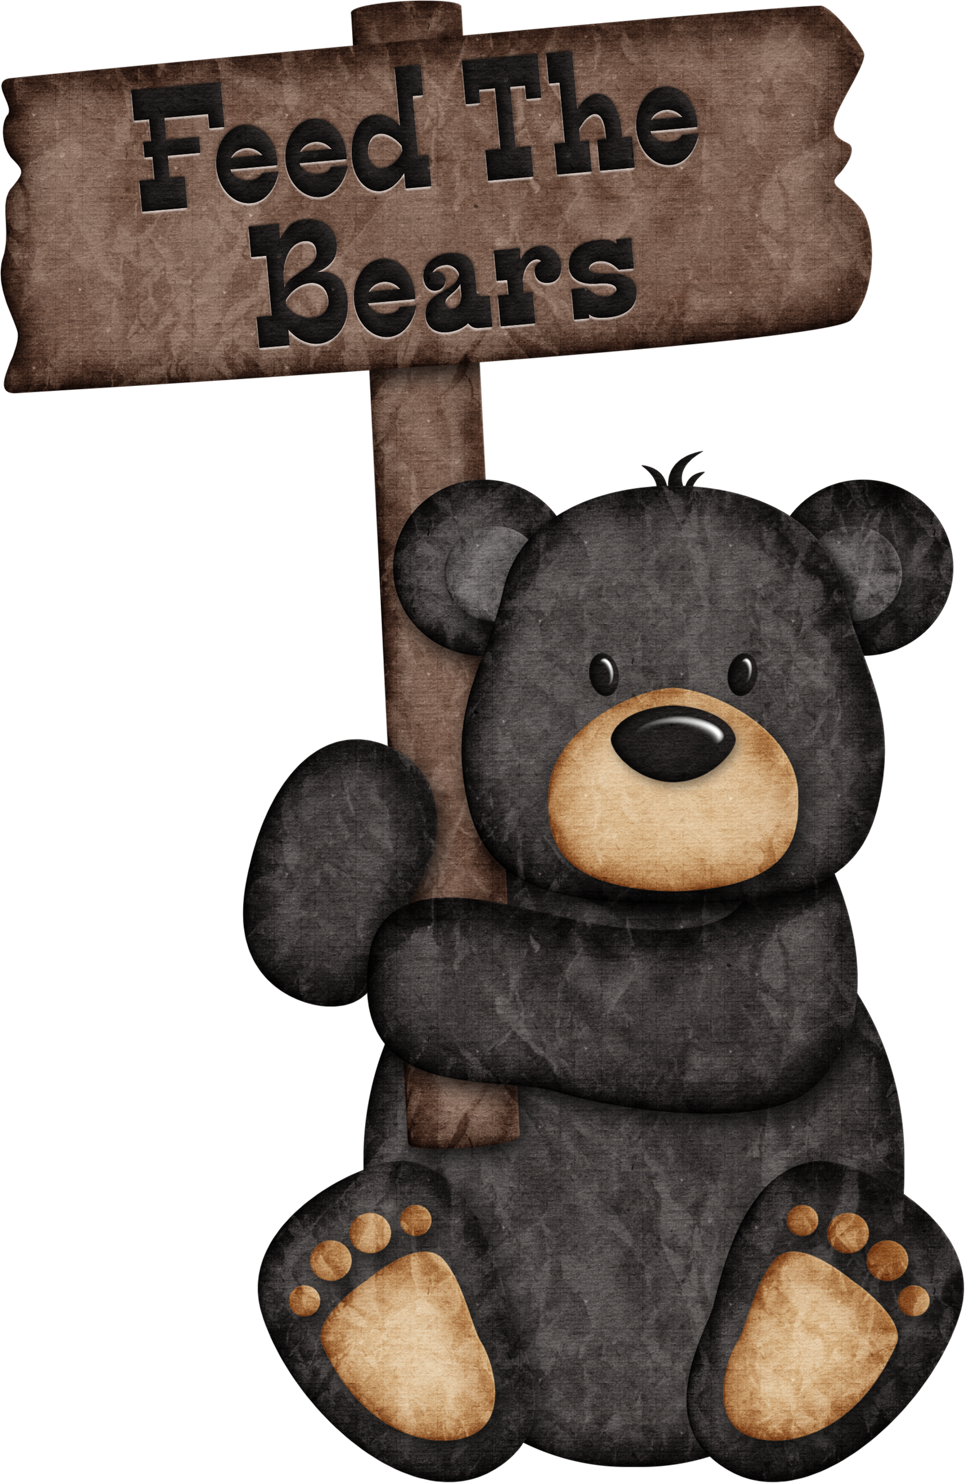 Feed the bears christine. Head clipart black bear